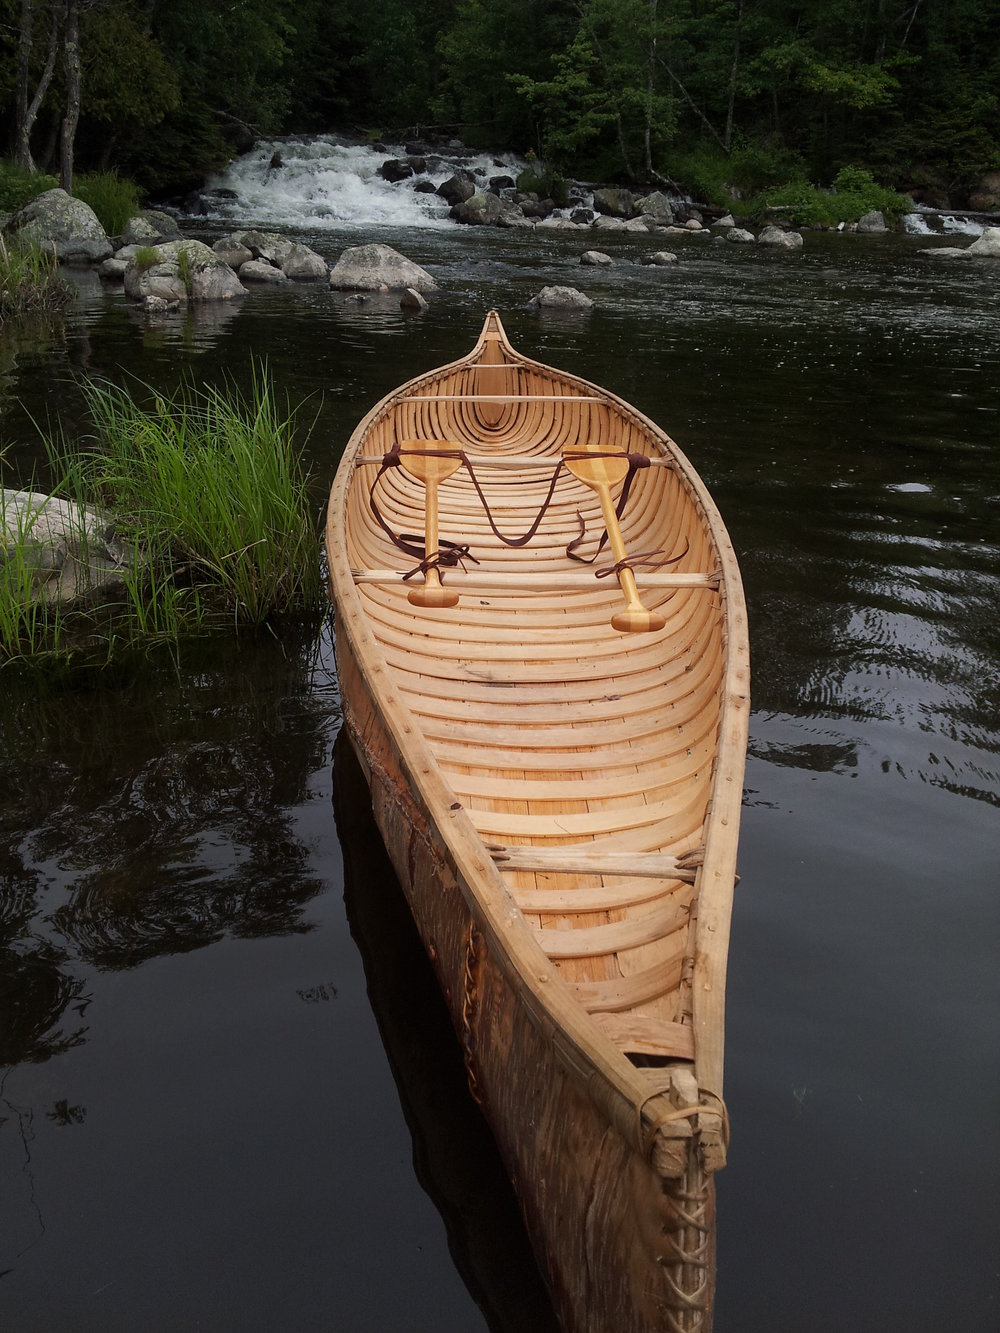 Hand crafted Birch Bark Canoe with tump line carry system.